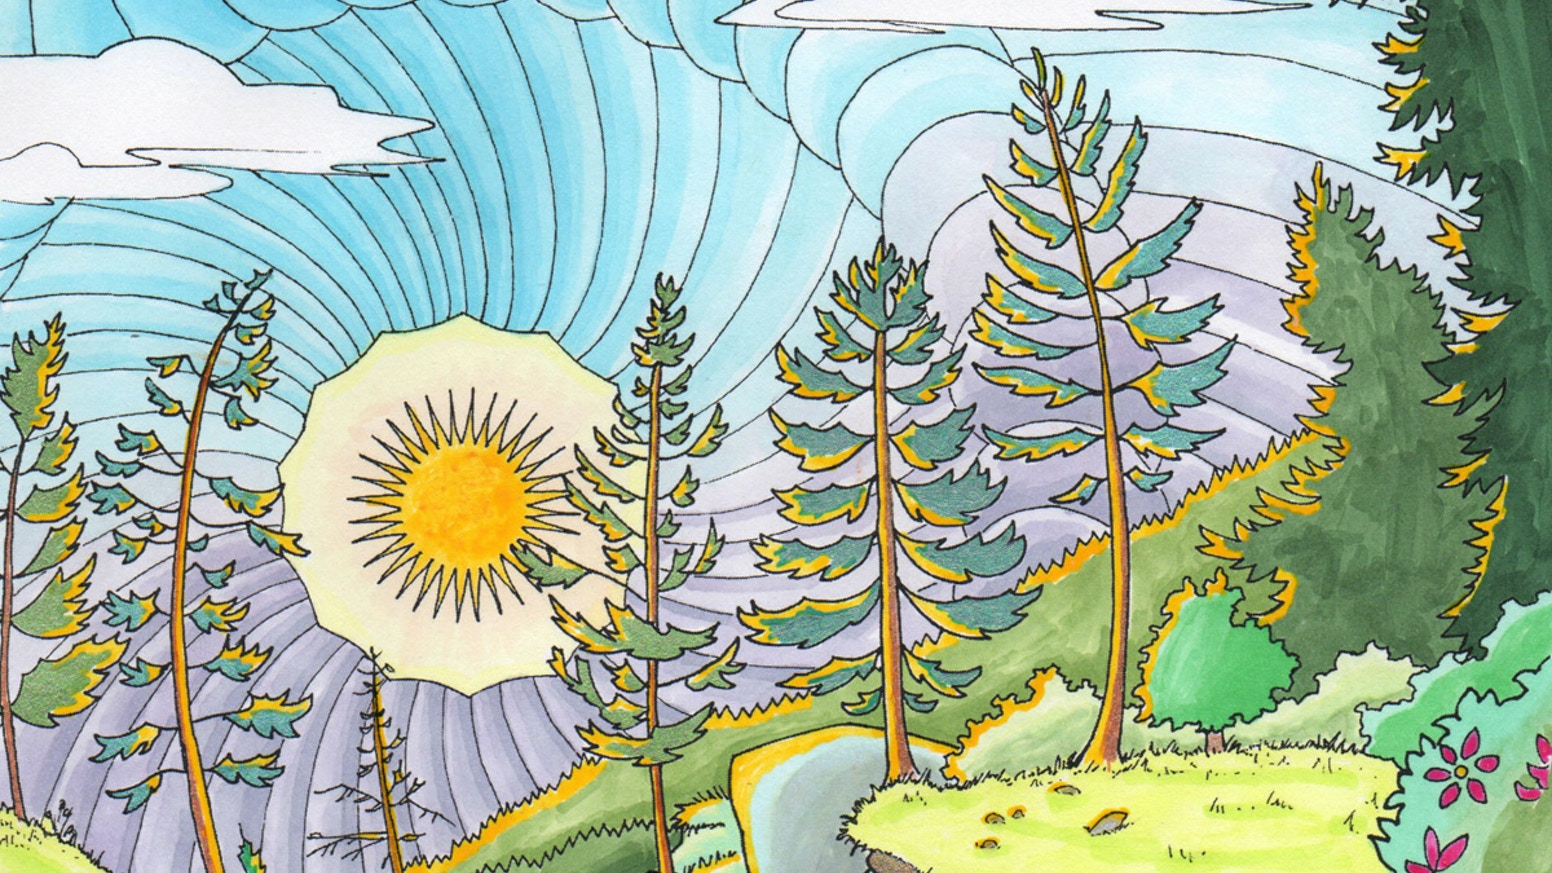 Legendary Landscapes is an ambitious new coloring book for adults. This book will feature 85 beautiful illustrations.